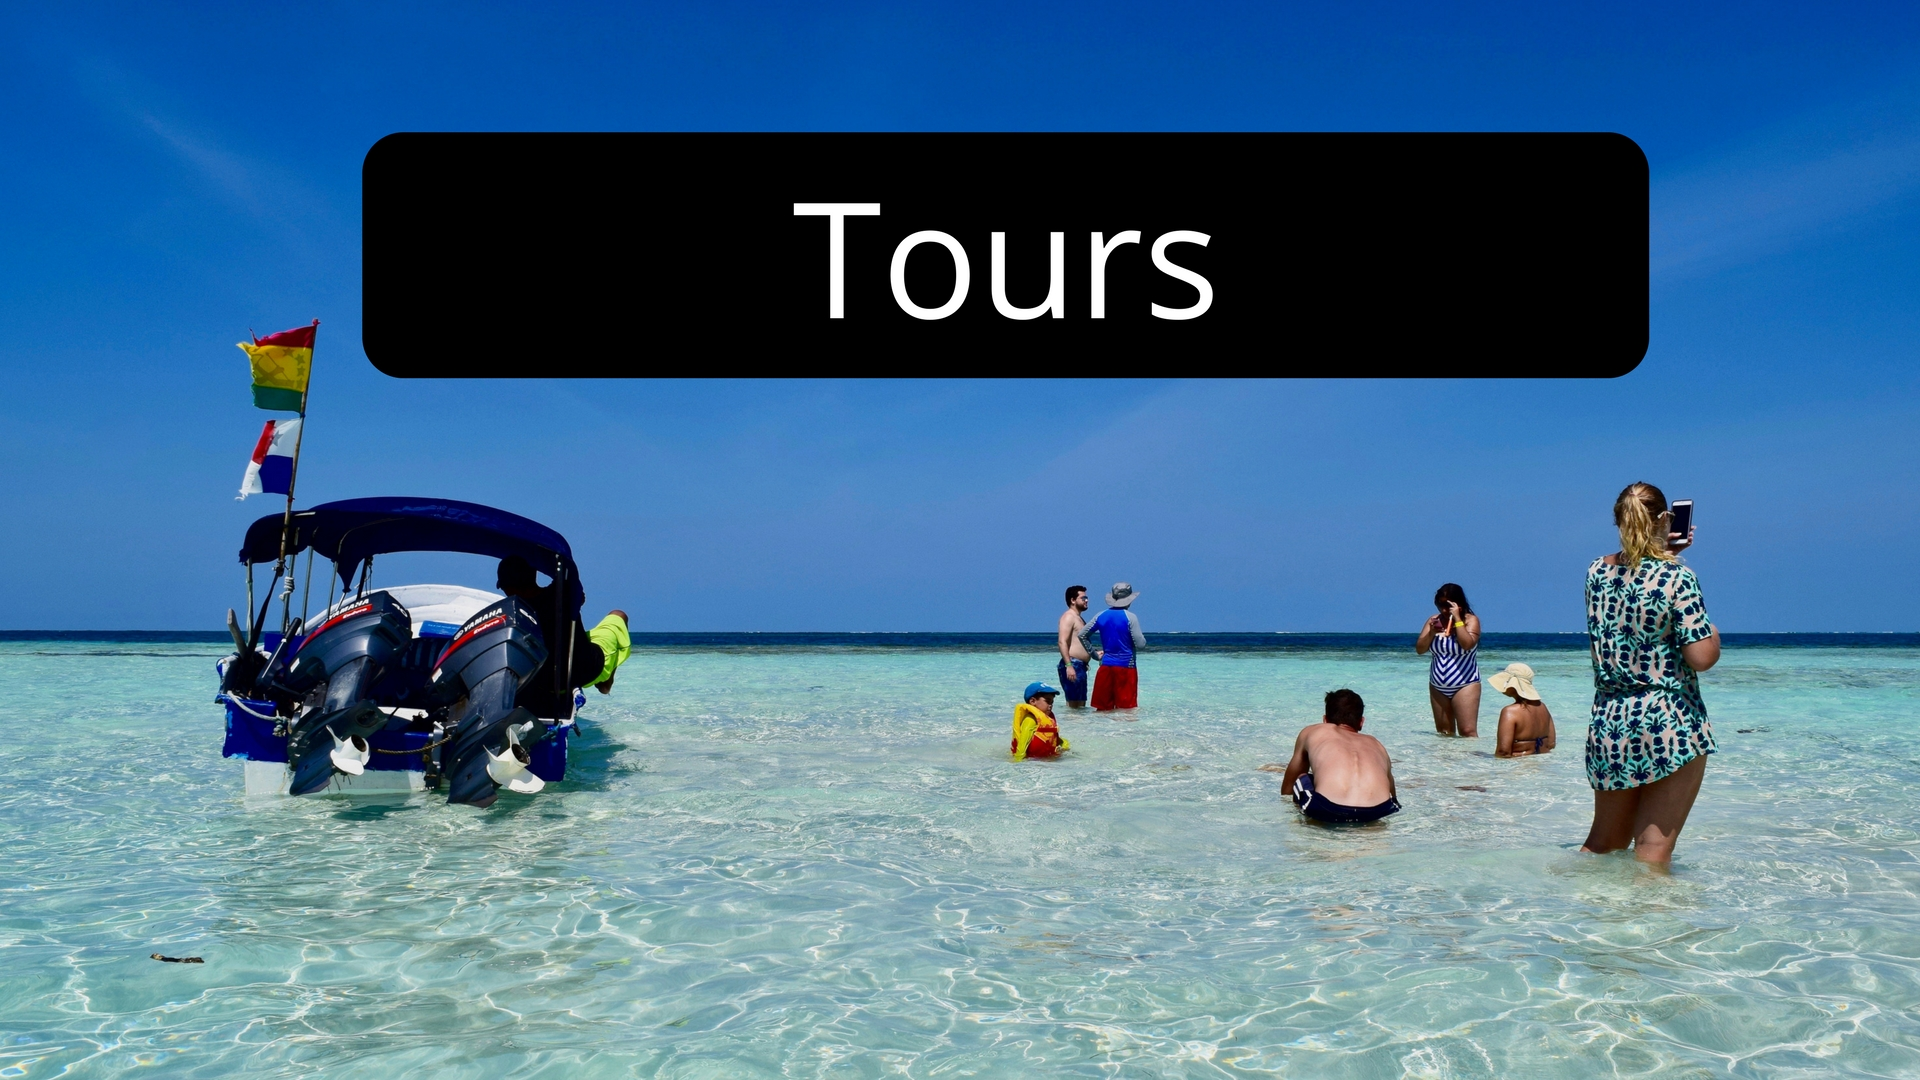 Tours Work with Travel Bloggers